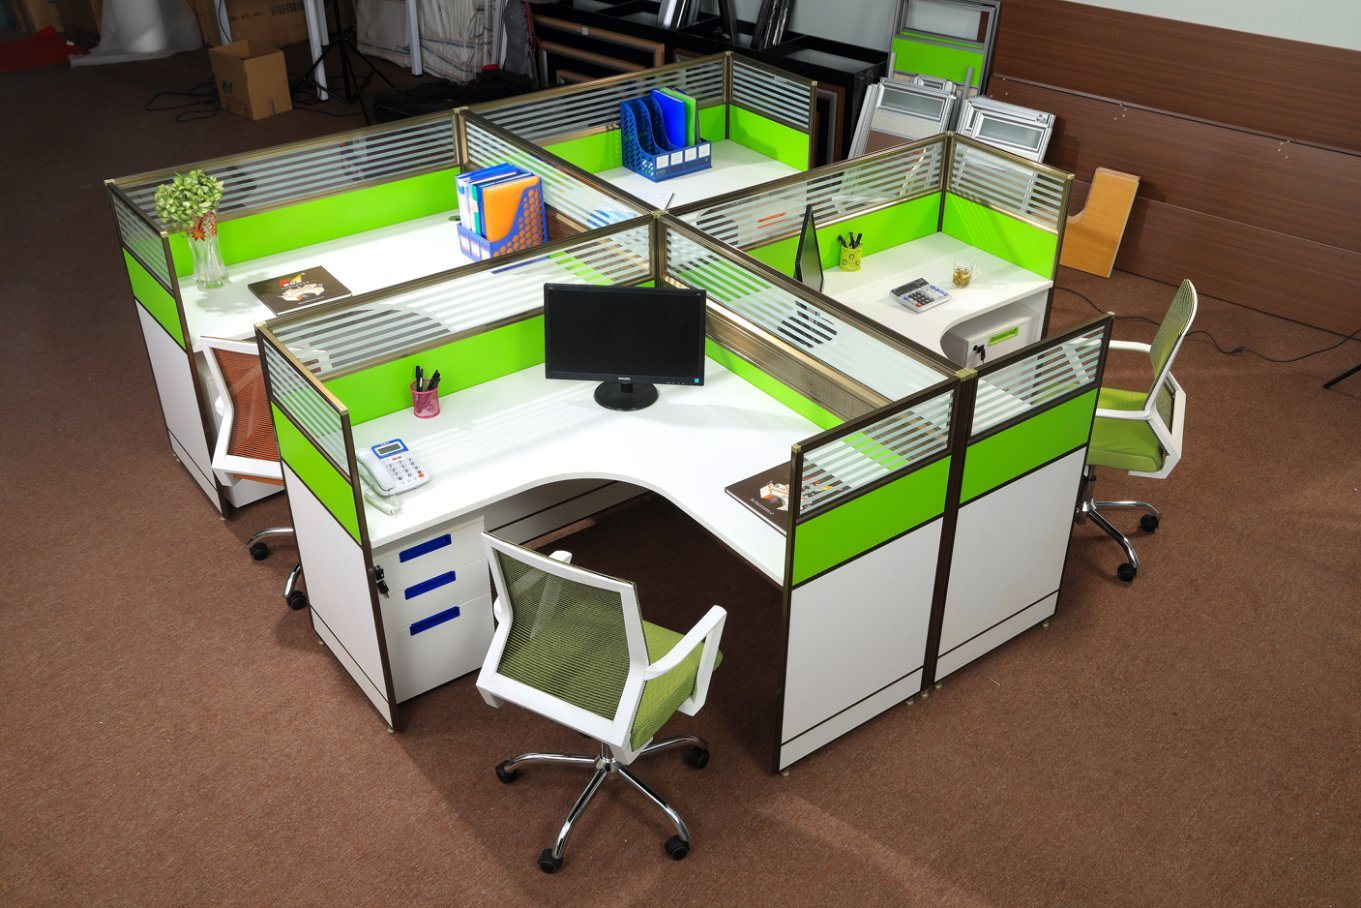 Global Panel Furniture Equipment Market 2020 Trending Technologies,  Developments, Key Players and Forecast to 2025 – The Courier